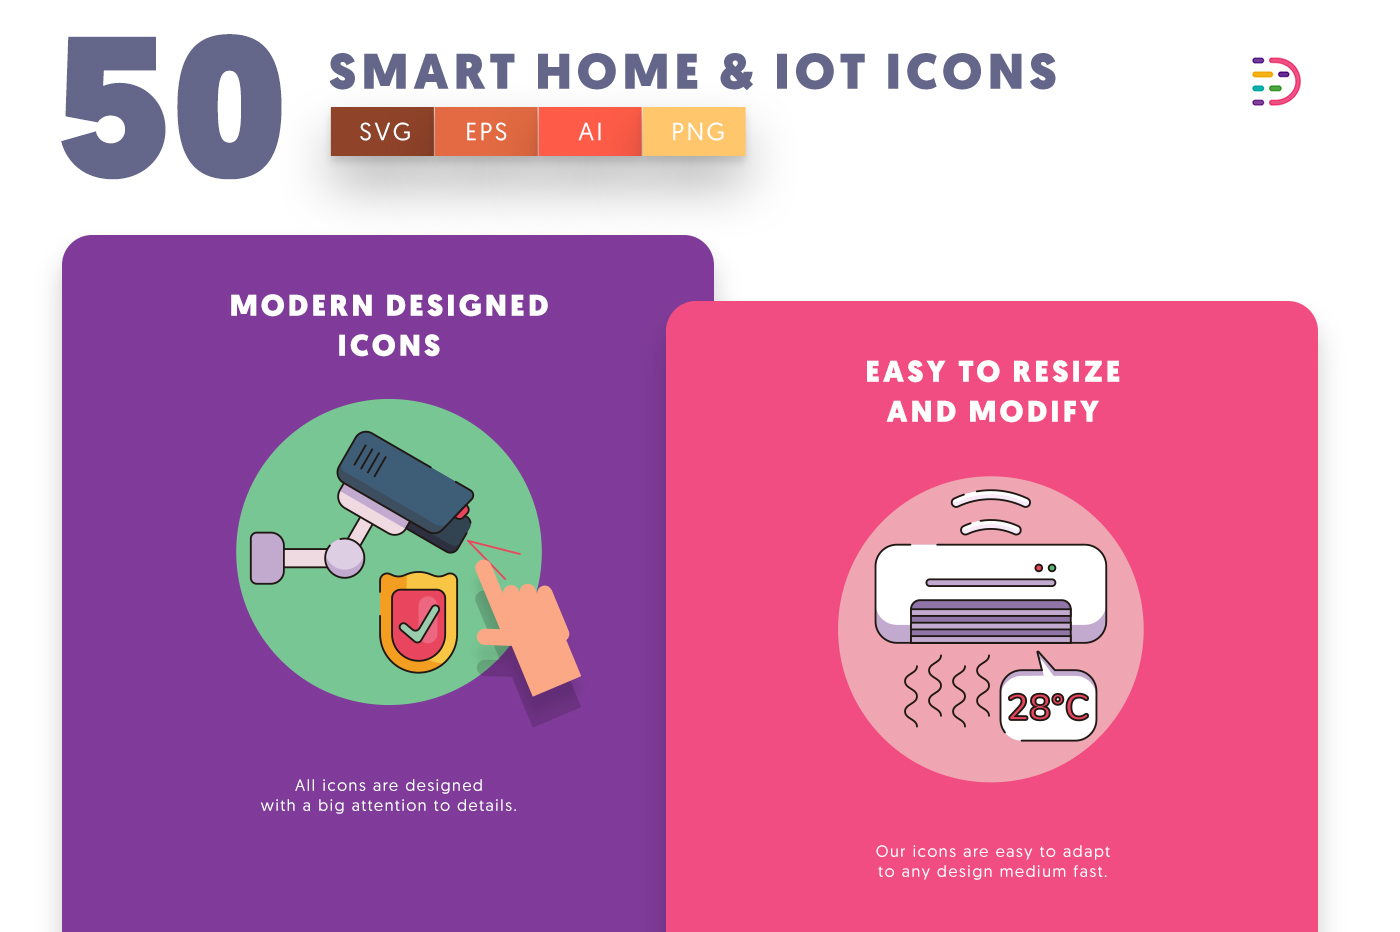 Design ready 50 Smart home & IoT Icons